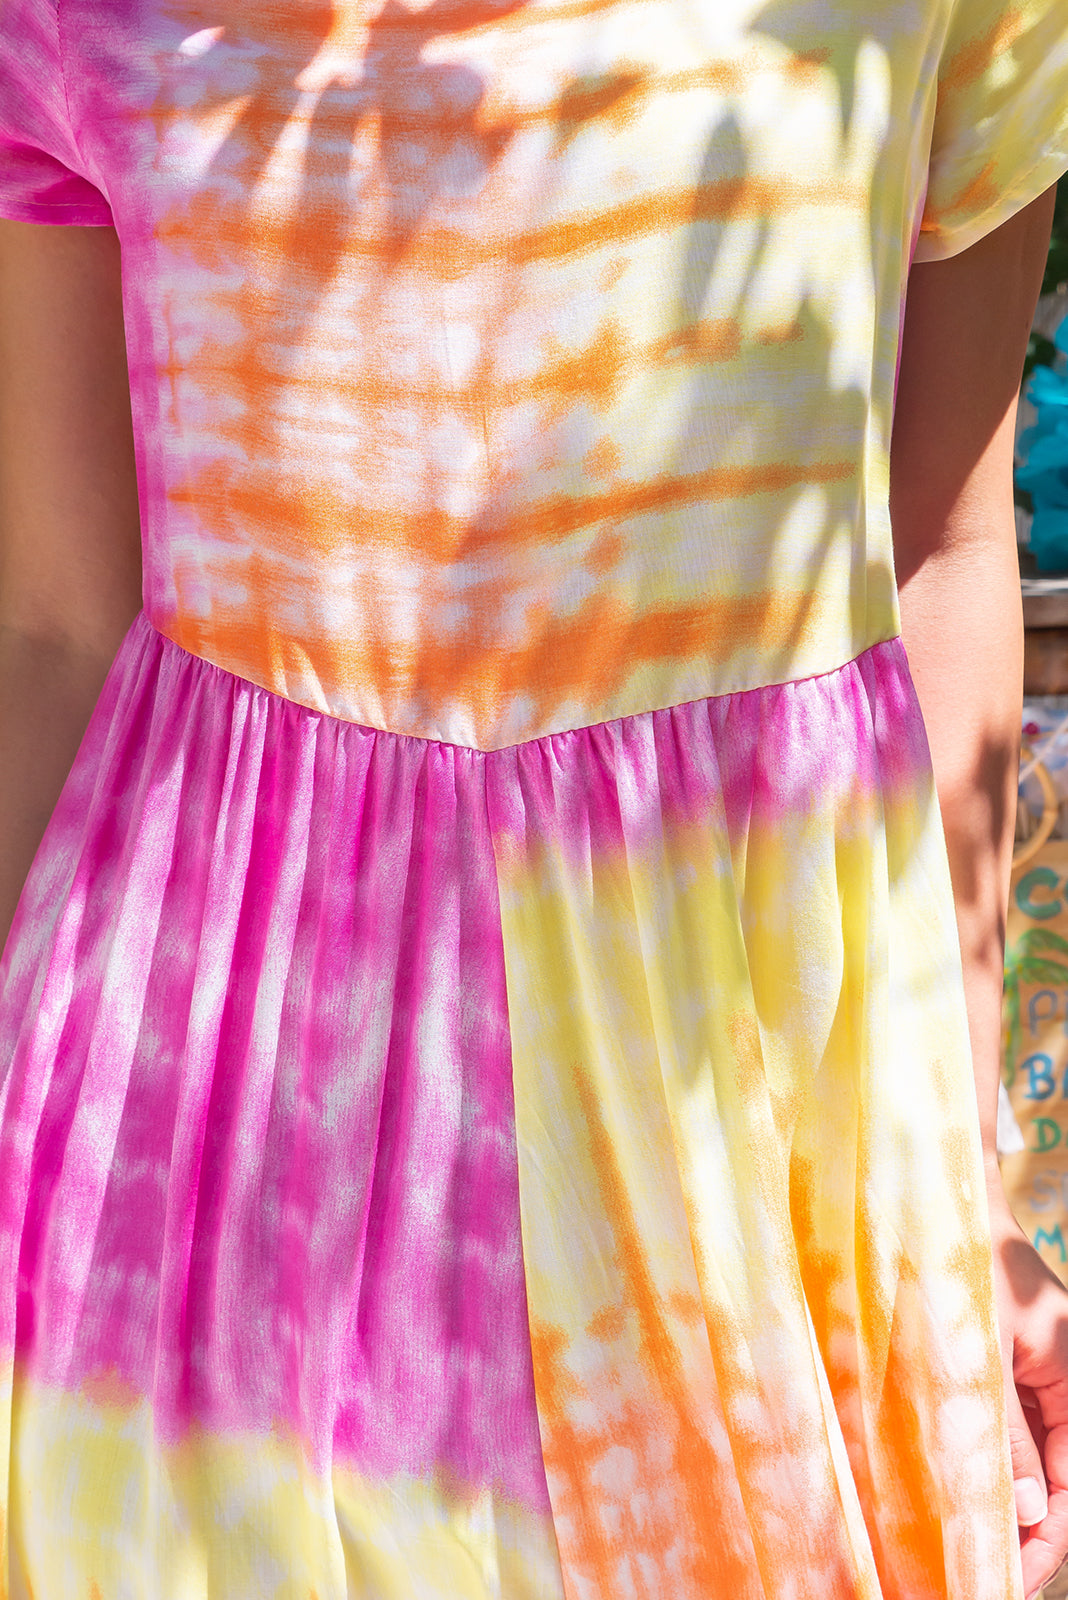 Fabric Swatch of  Cocoloco Gelati Tie Dye Midi Dress featuring 100% rayon in hot pink, yellow and orange tie dye print.